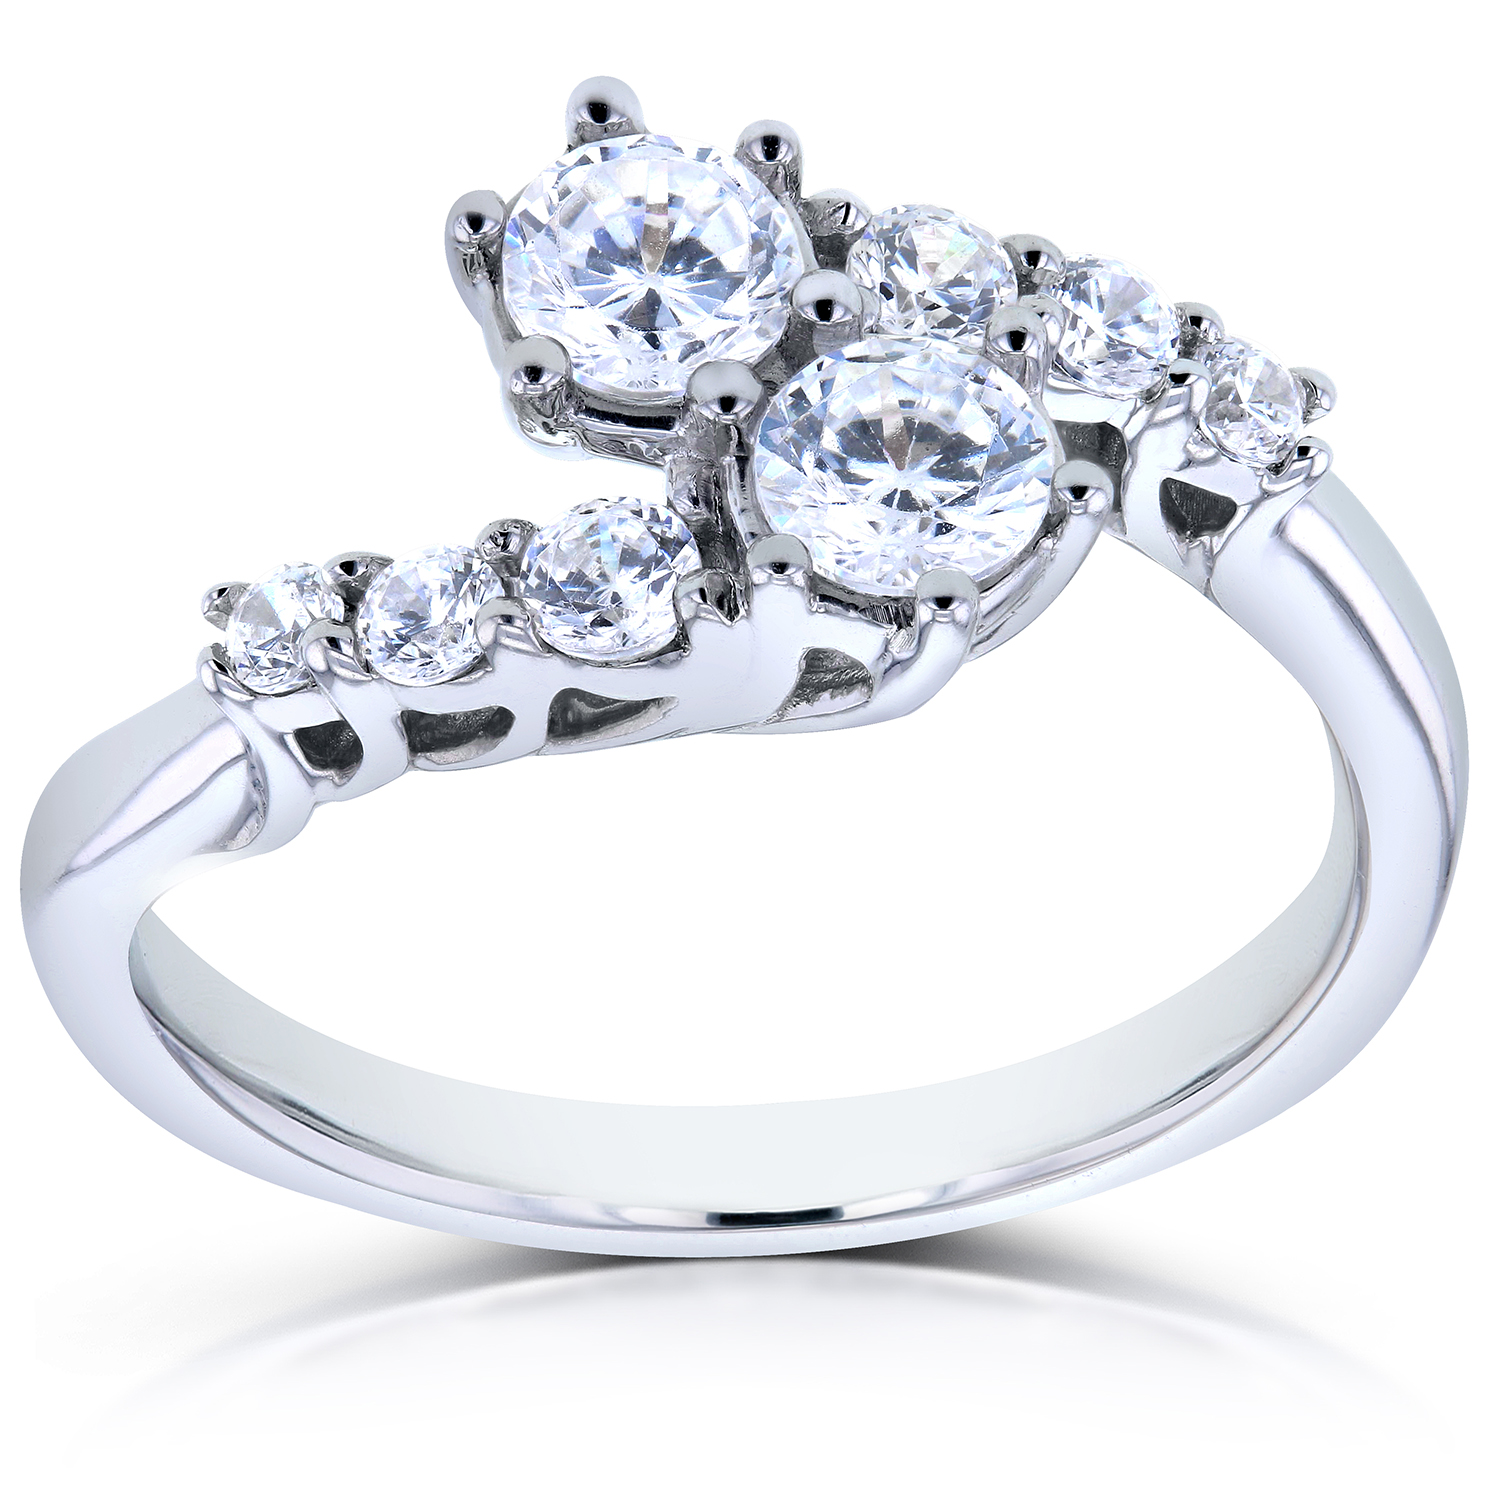 Dealmoon Exclusive ! 60% Off Double Diamond ring + 20% off sitewide AND Free Necklace When Purchase Over $750 @ Kobelli